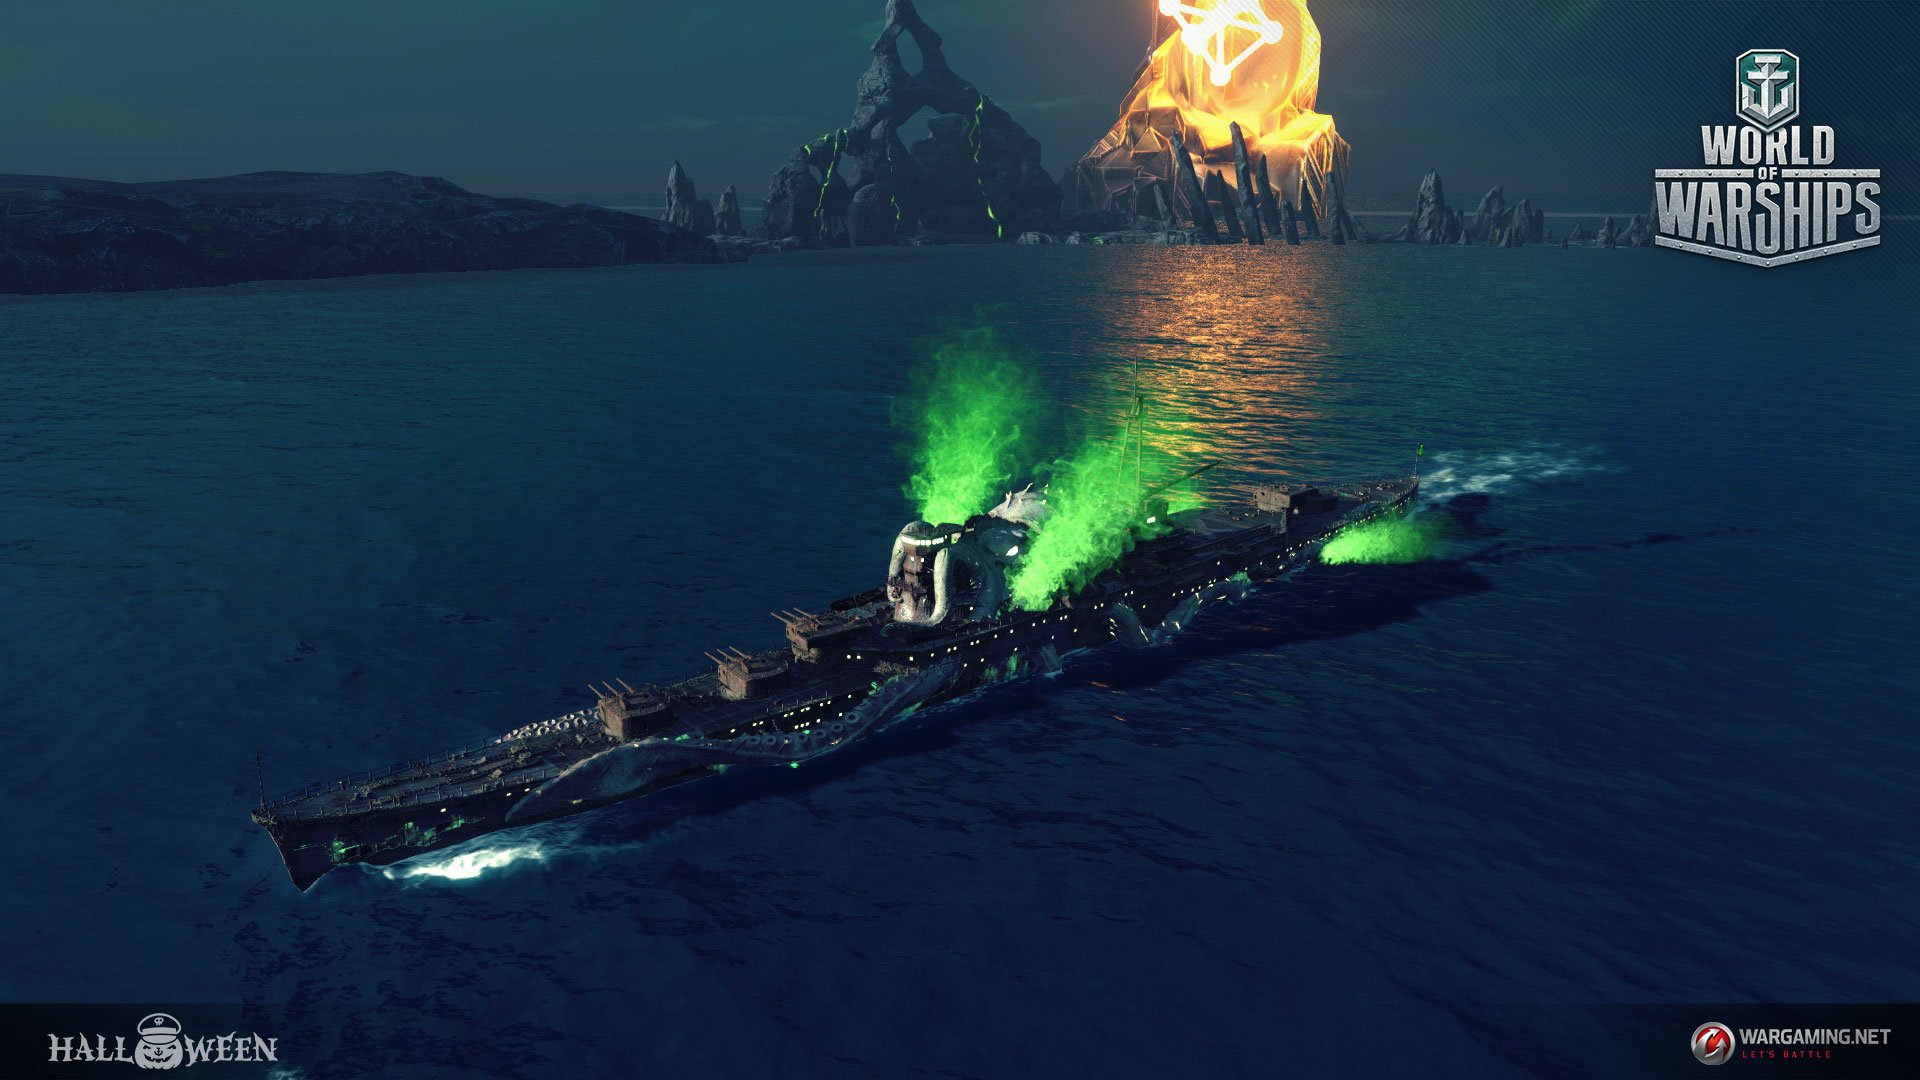 Wargaming reinvents World of Warships with subs and planes